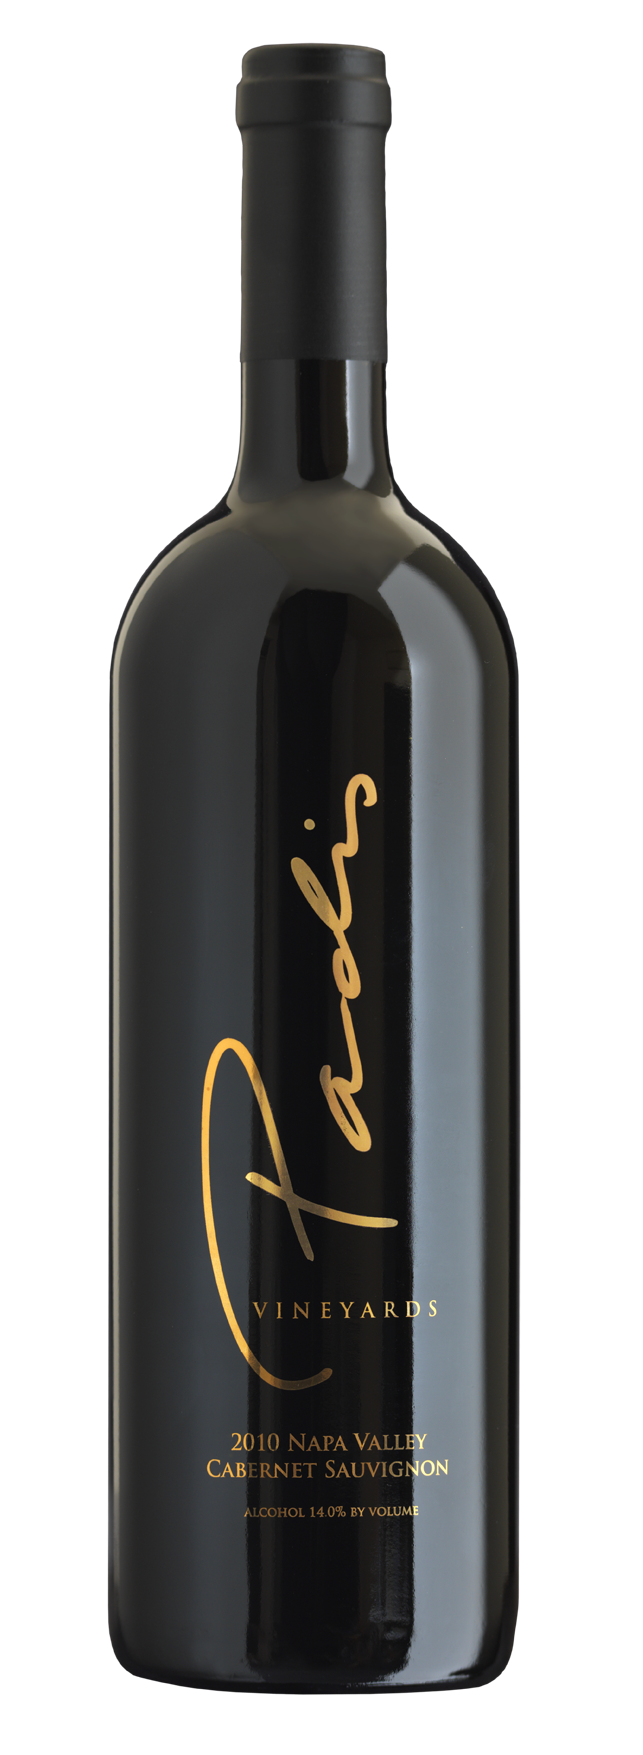 Product Image for 2012 Padis Cabernet Sauvignon